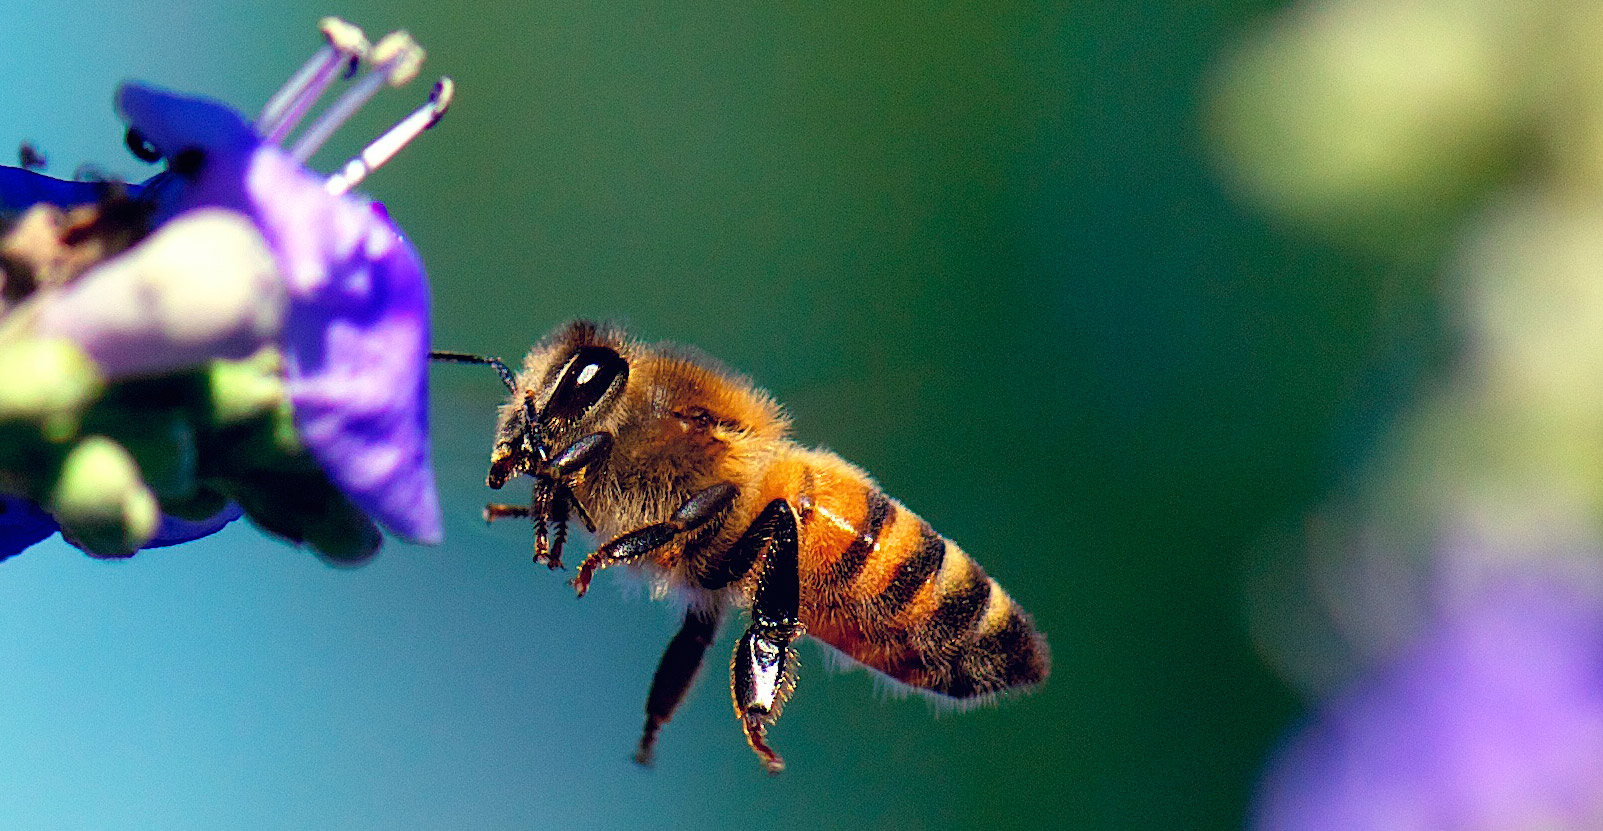 Honey bees are responsible for pollination of our major food crops.